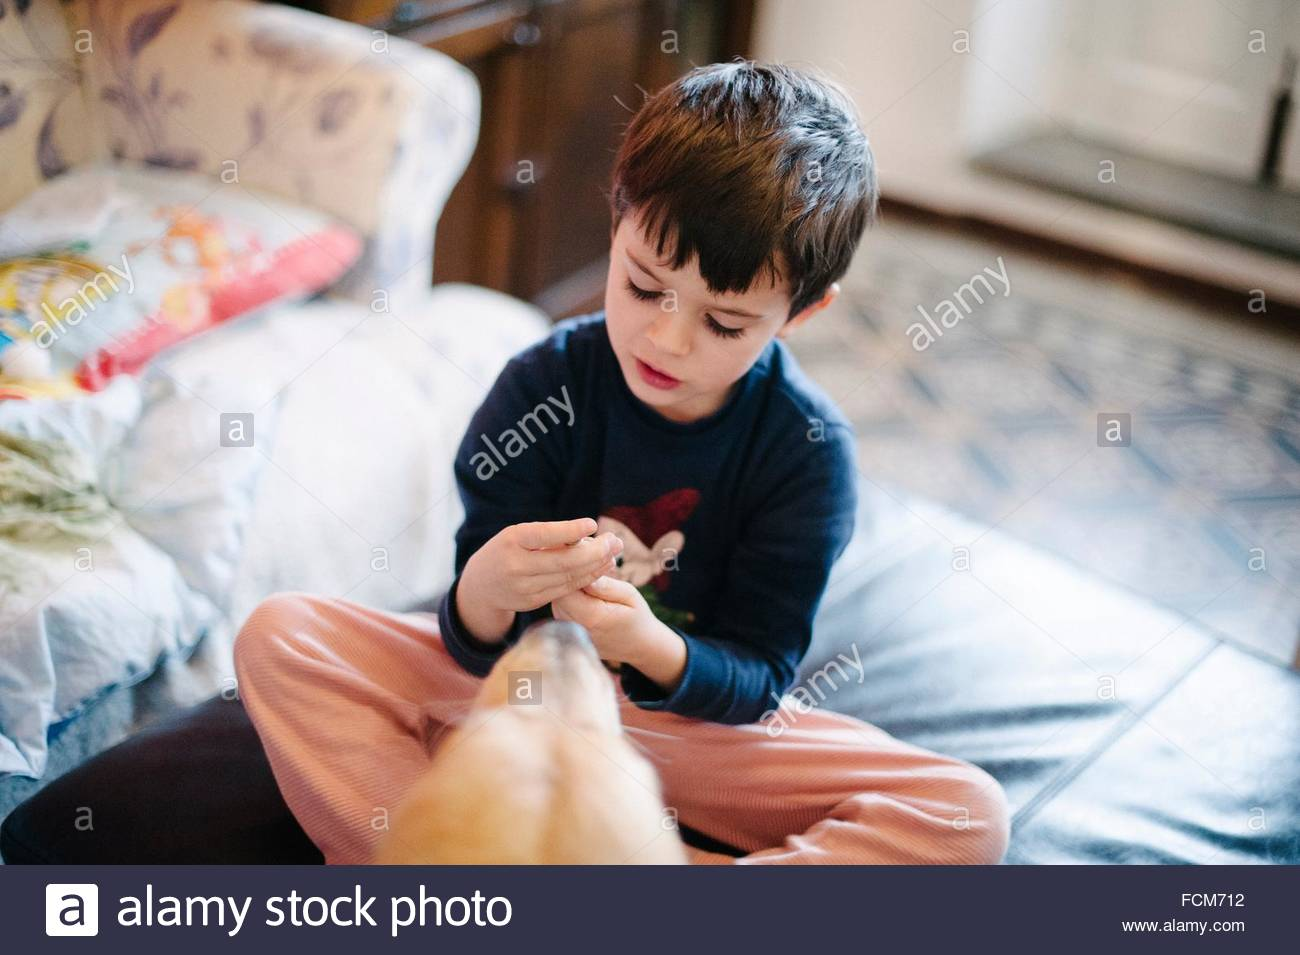 Child plays sitting on poof, dog near Stock Photo